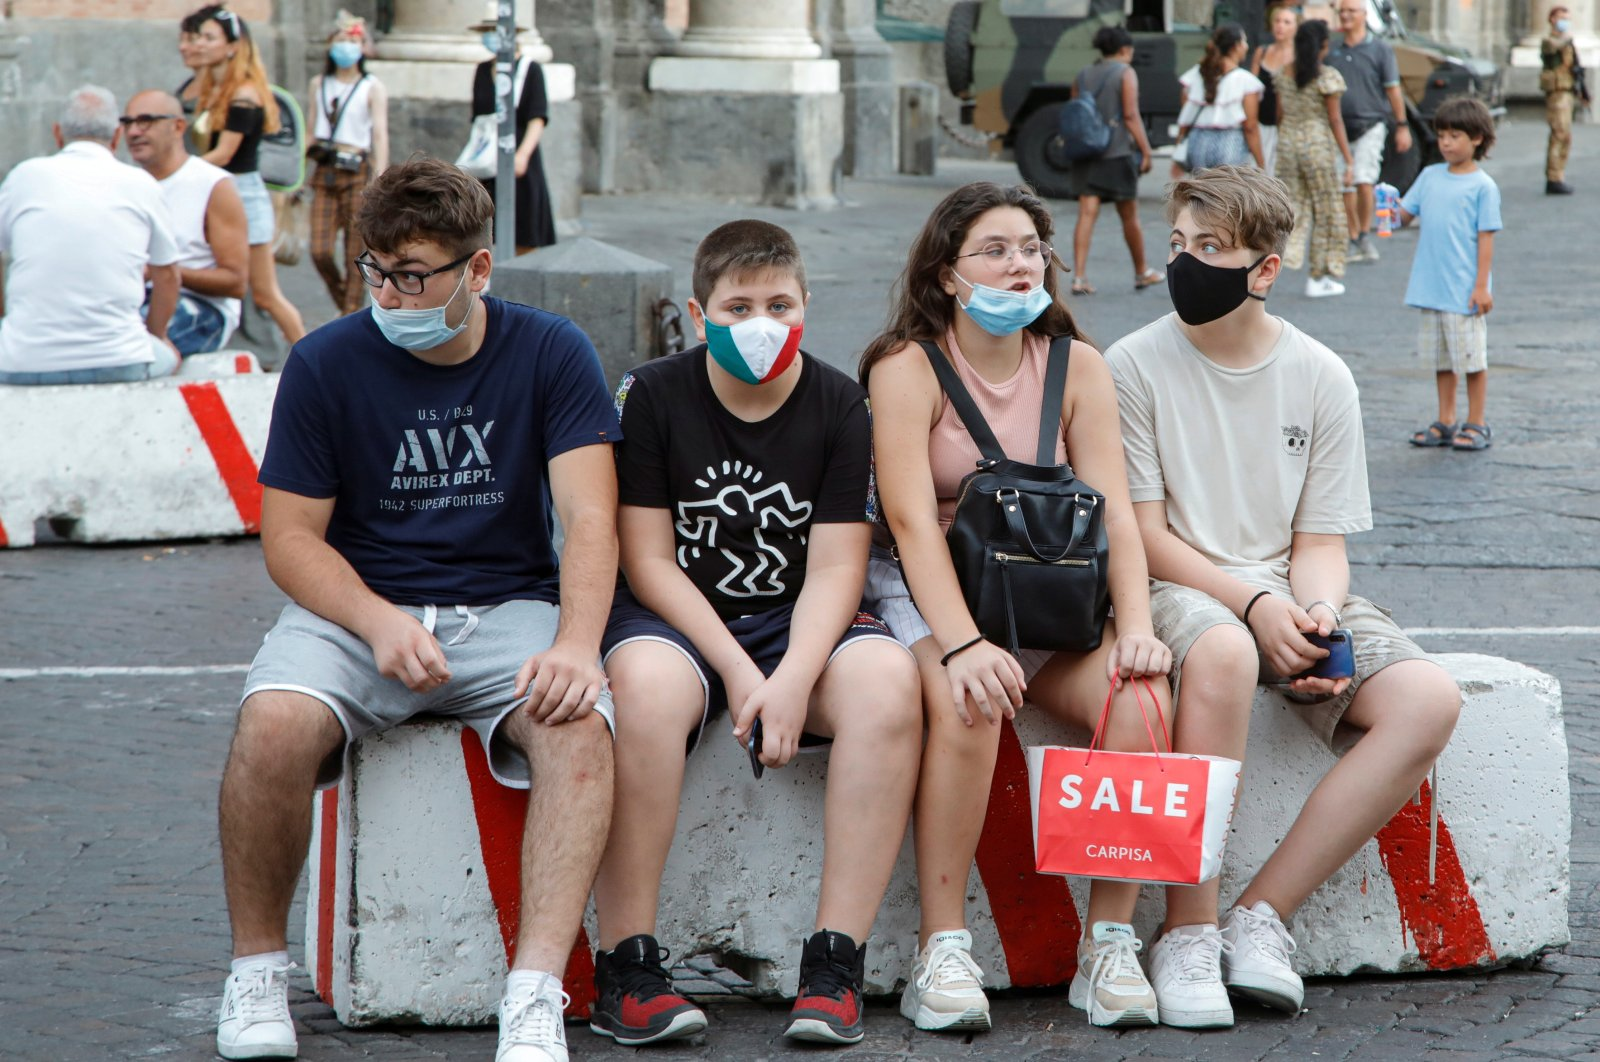 Young people wear masks as they sit on a car barrier following a government decree that face coverings must be worn between 6 p.m. and 6 a.m. in areas close to bars and pubs and where gatherings are more likely, Naples, Italy, Aug. 17, 2020. (Reuters Photo)